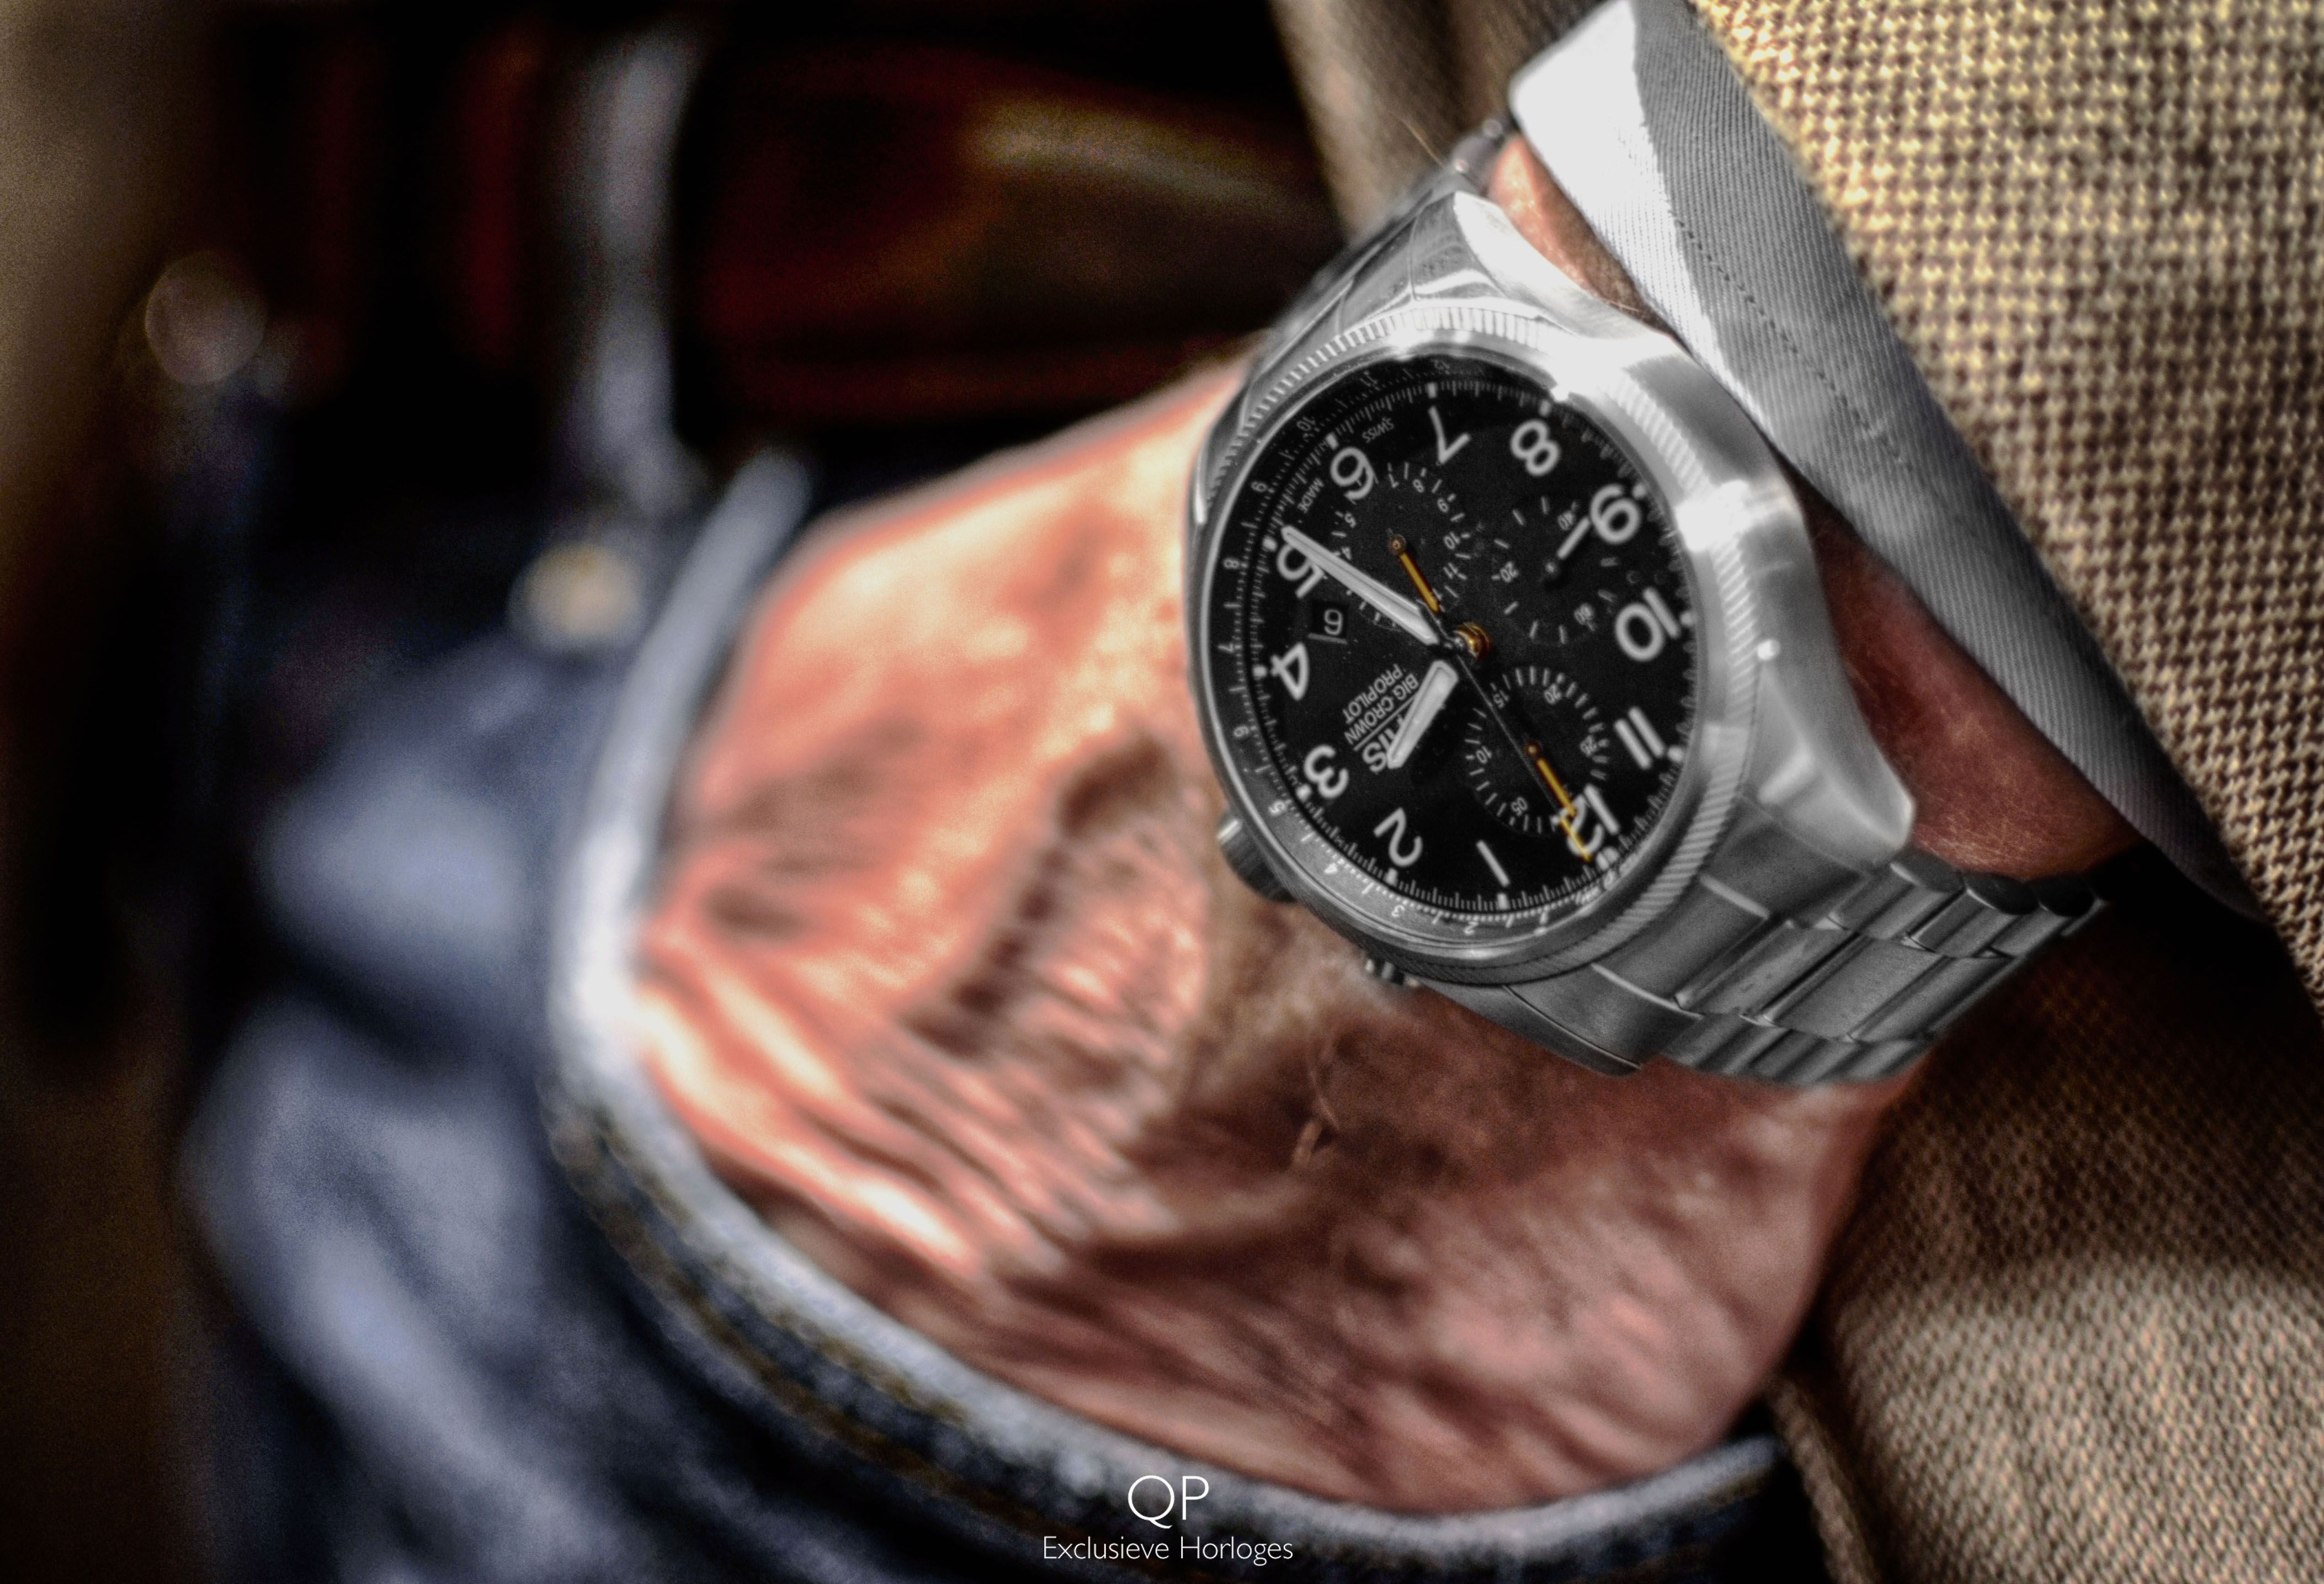 Here We Have The Characteristic Oris Big Crown Propilot Chronograph It Is Just One Of Several Products That S The Result Of Oris Long Standing Contribution To